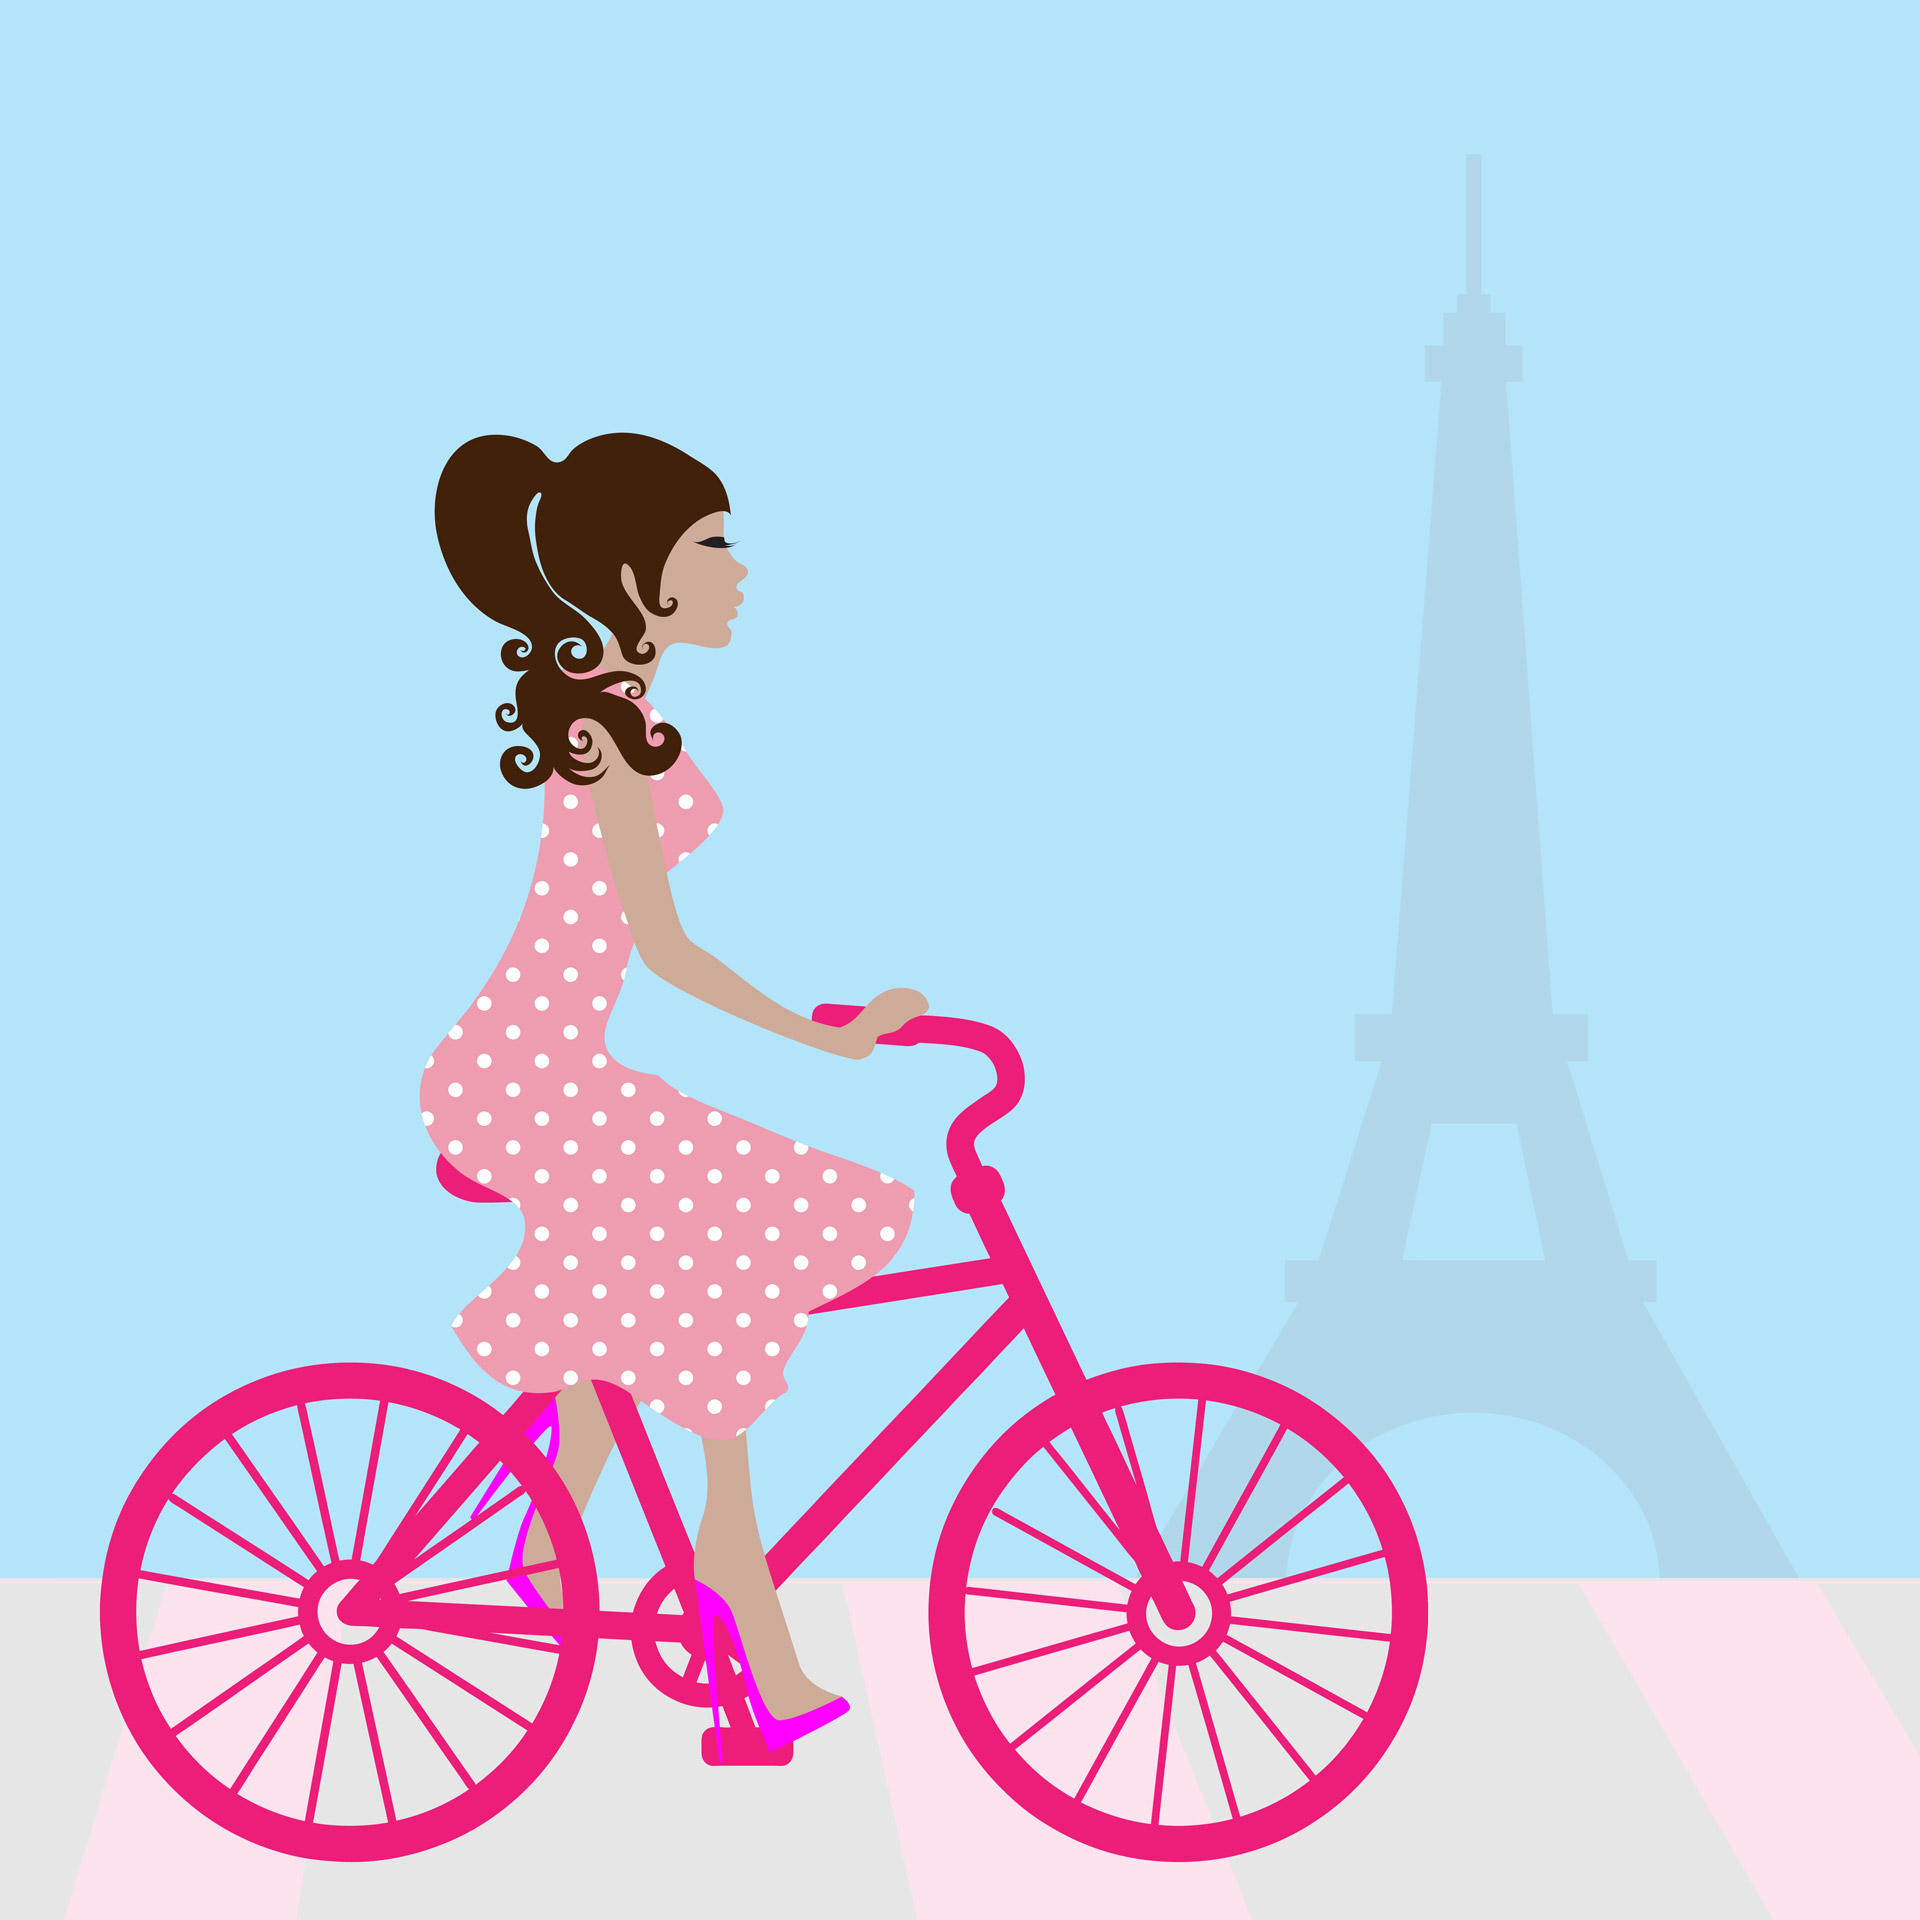 Cycling clipart girl paris. In free stock photo